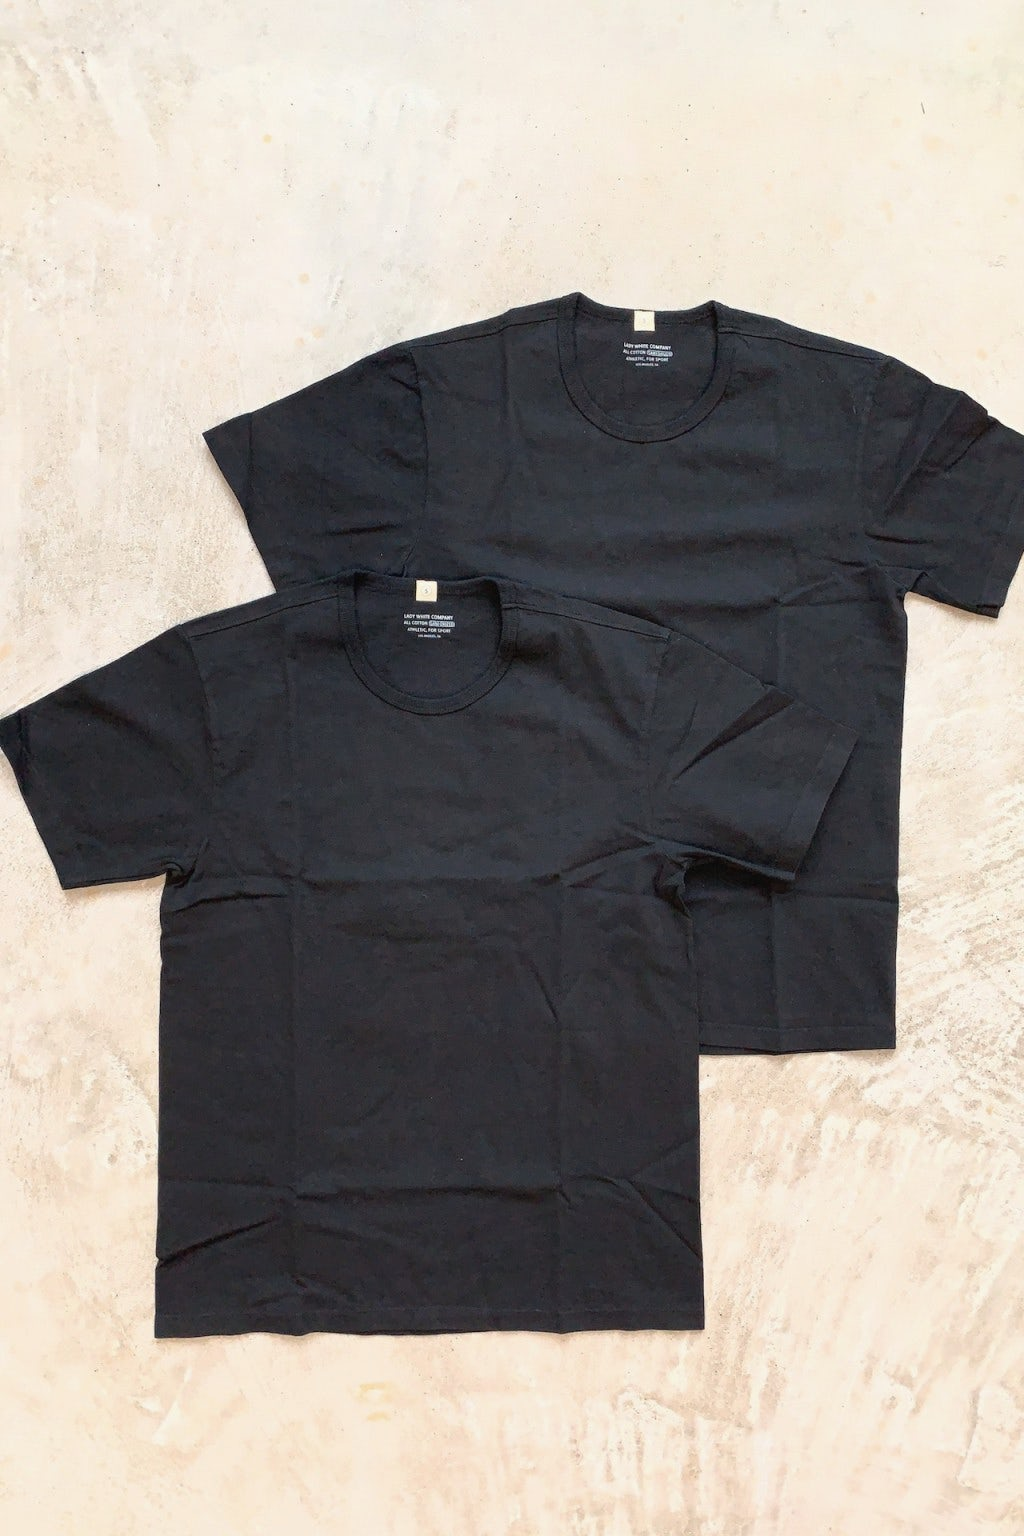 Lady White Co. Two Pack T-Shirts Black Cotton